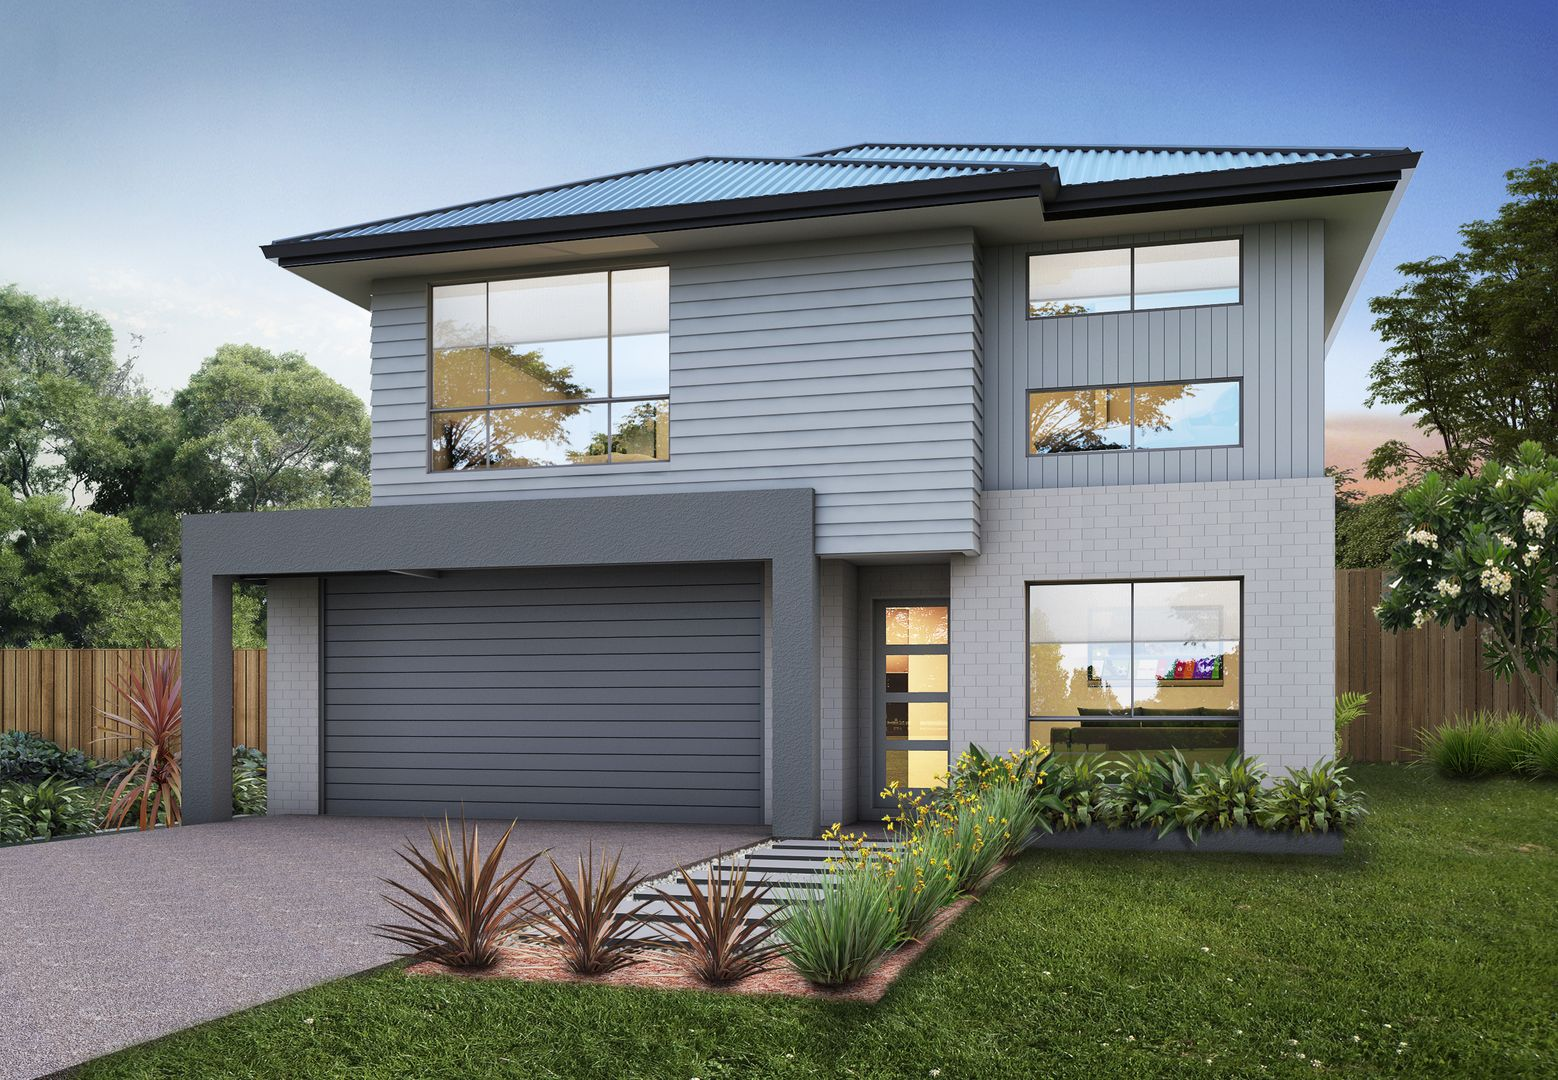 Lot 3335 Hutchence Drive, Point Cook VIC 3030, Image 0